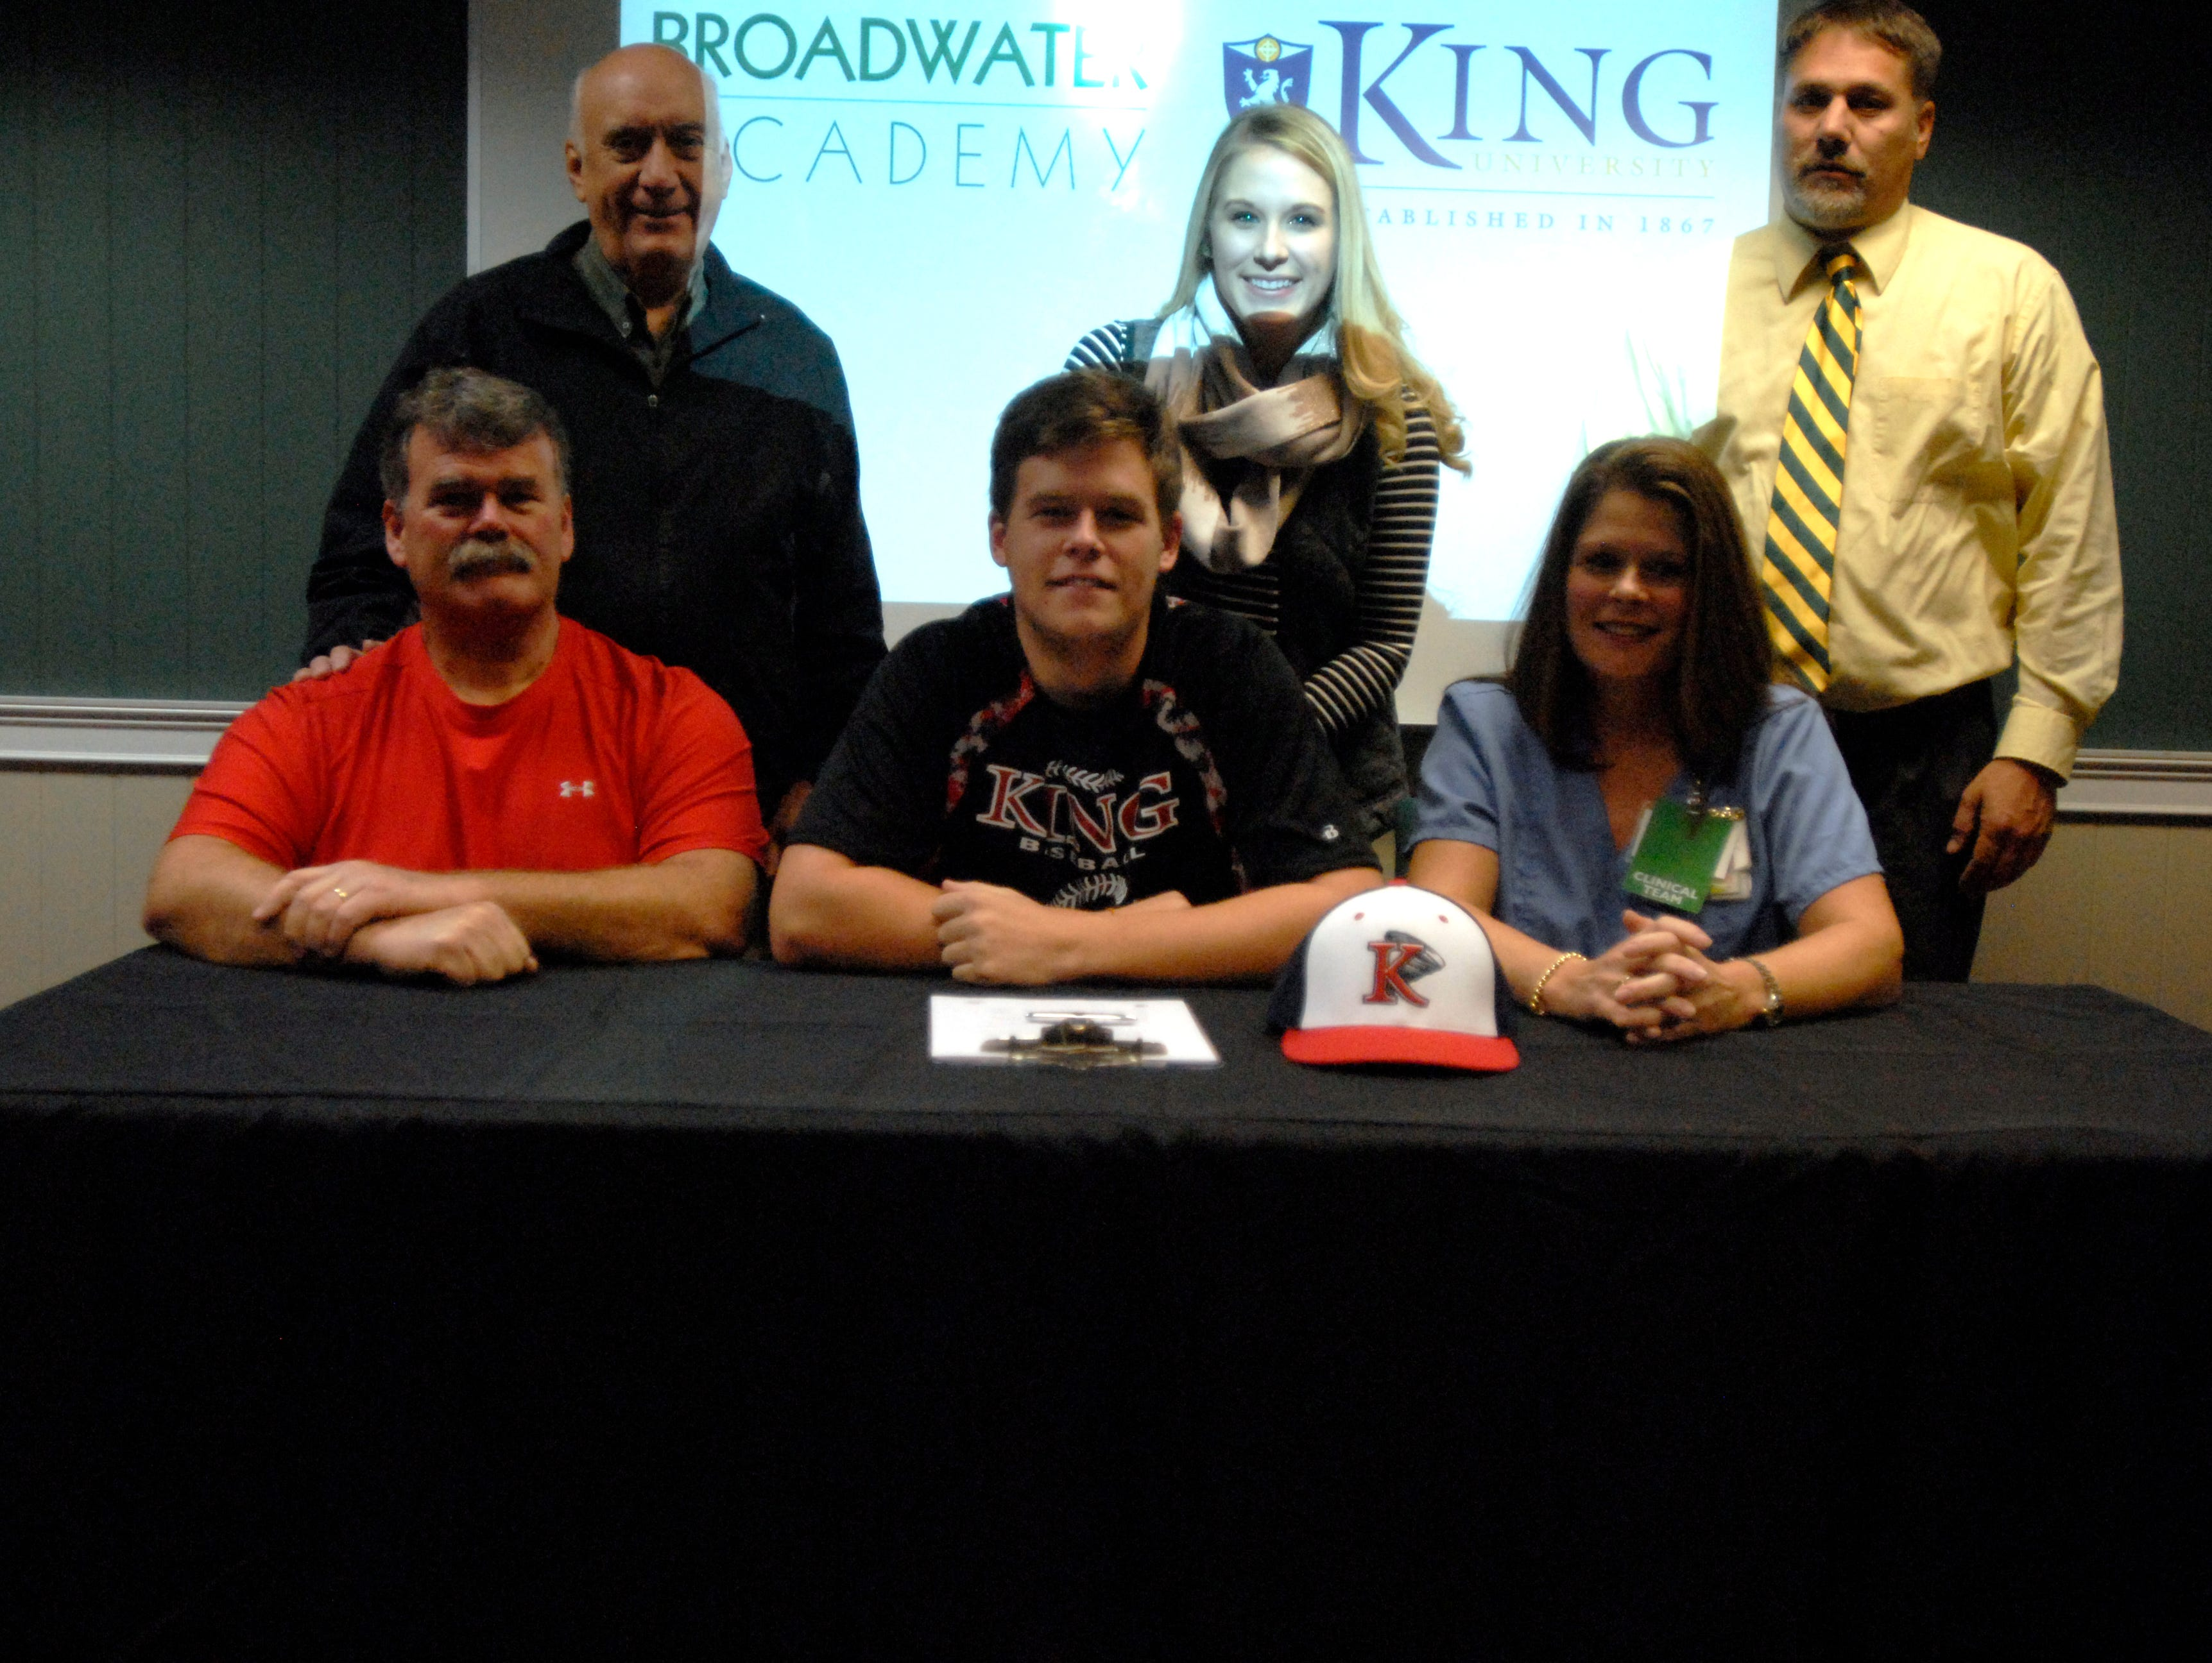 Broadwater Academy senior Ben Farlow, middle bottom row, poses after signing his letter of intent to play baseball at King University in Bristol, Tenn. Thursday, Nov. 12, 2015. Also pictured, from left bottom row, Farlow's father Charlie, Farlow, Farlow's mother Susan; from left top row, Broadwater Headmaster Joe Spagnolo, Farlow's sister Abby and Broadwater Athletic Director Ron Anson.